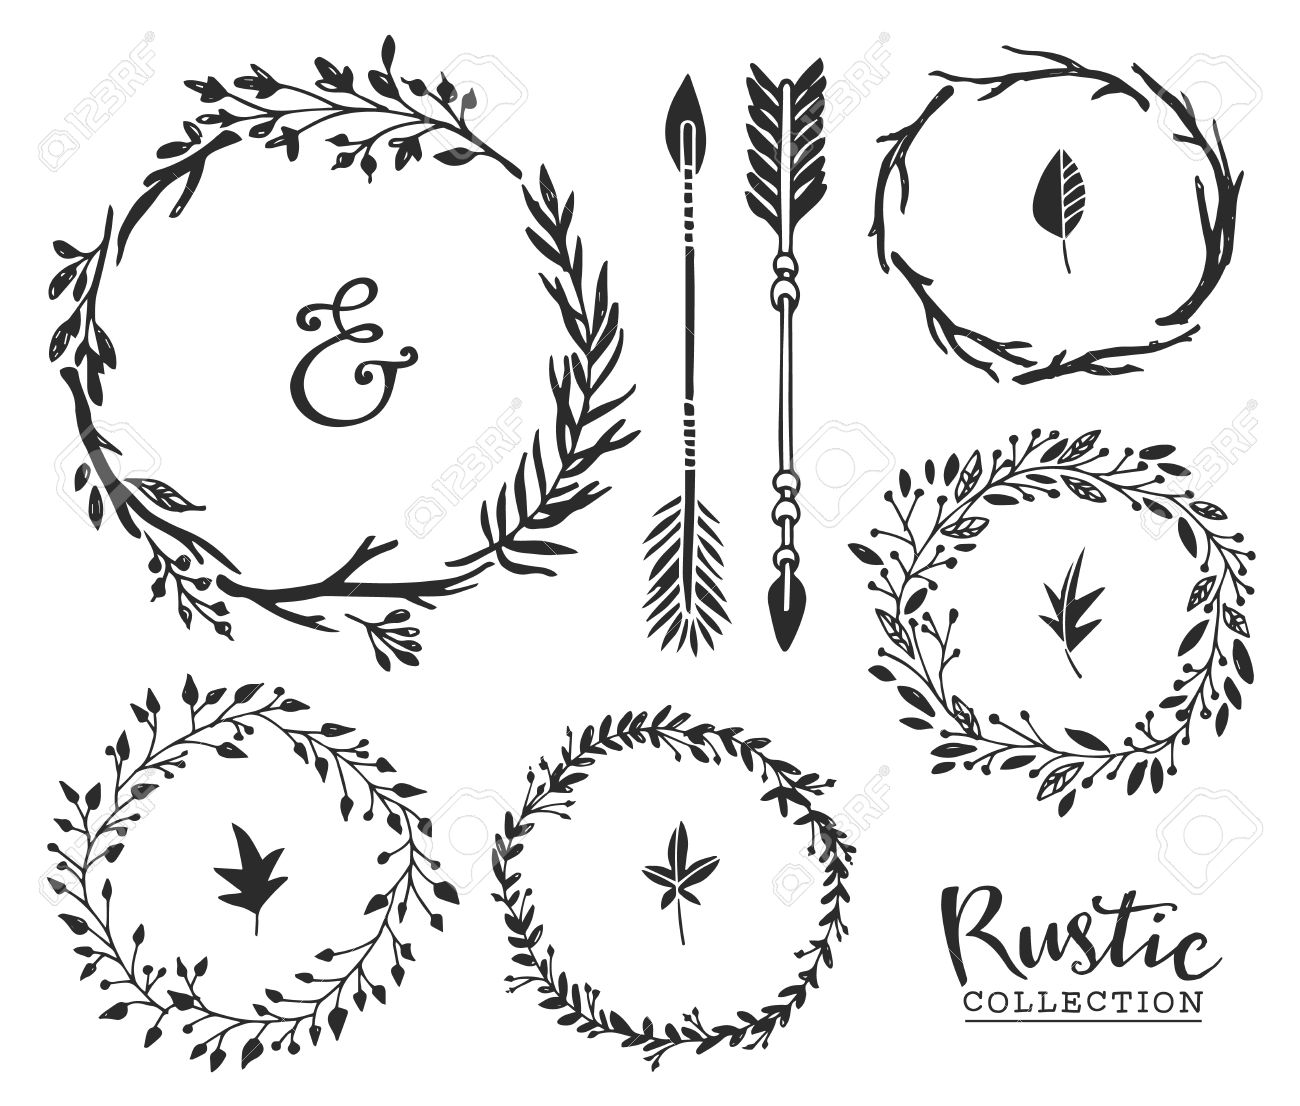 Hand Drawn Vintage Ampersand Arrows And Wreaths Rustic Decorative Vector Design Set Stock